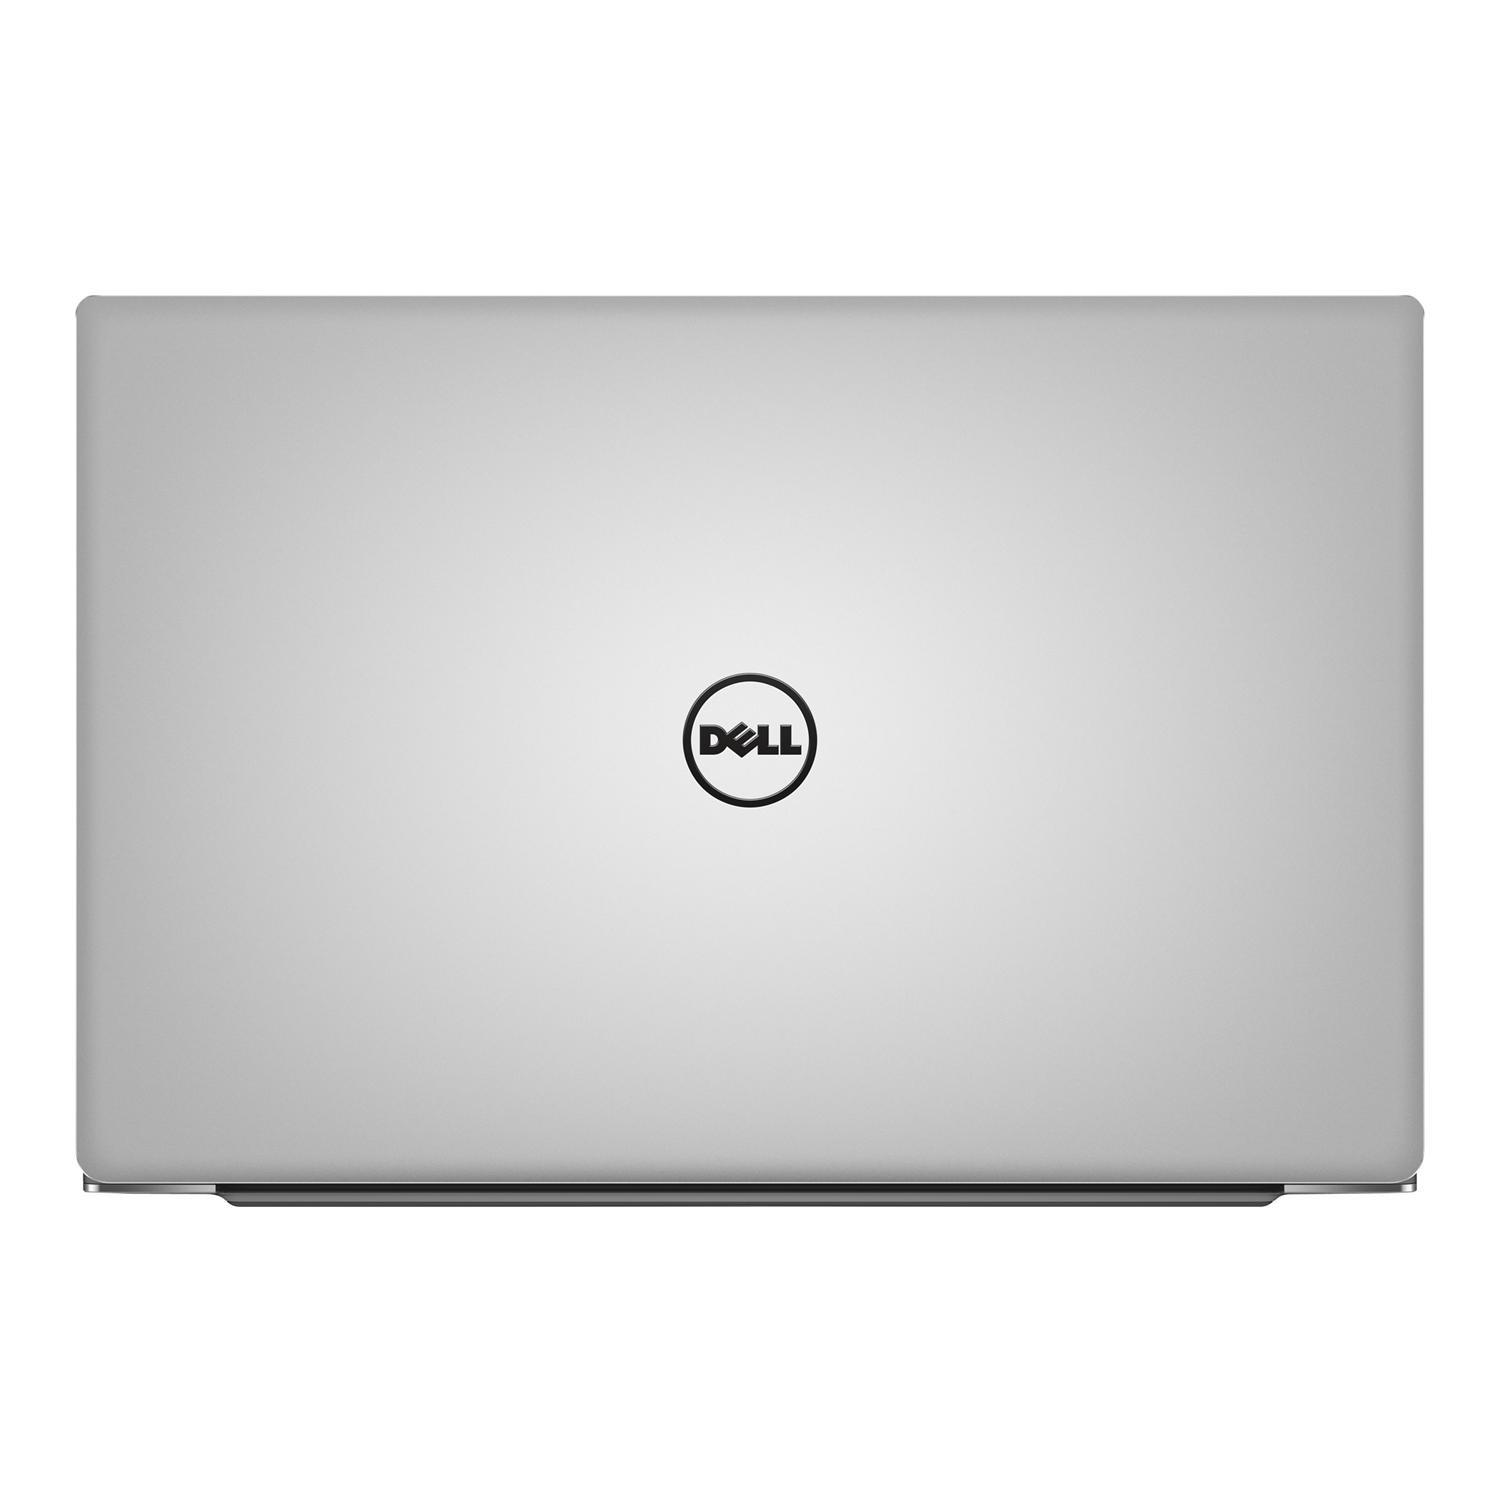 Dell XPS 13 Core i5-7Y57 8GB 256GB SSD 13 3 Inch Touch Windows 10 Pro Laptop